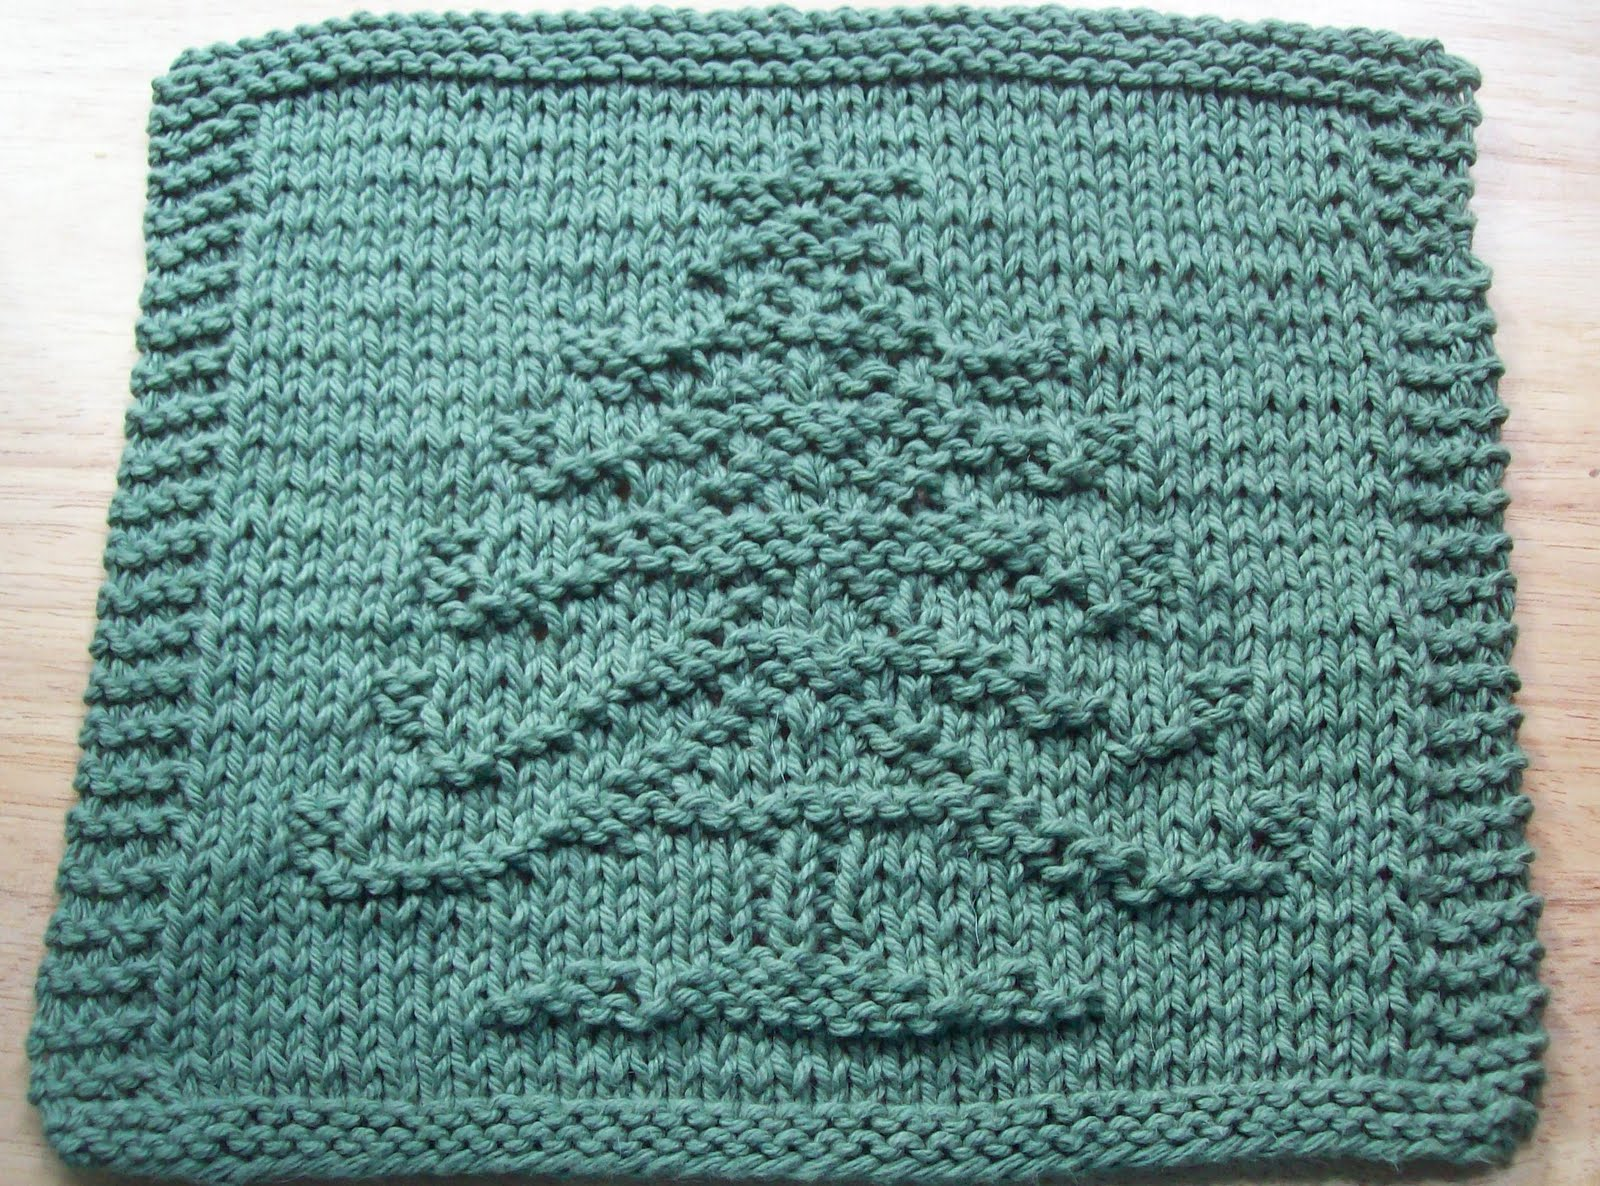 Pattern Knitted Dishcloth : DigKnitty Designs: Another Christmas Tree Knit Dishcloth ...